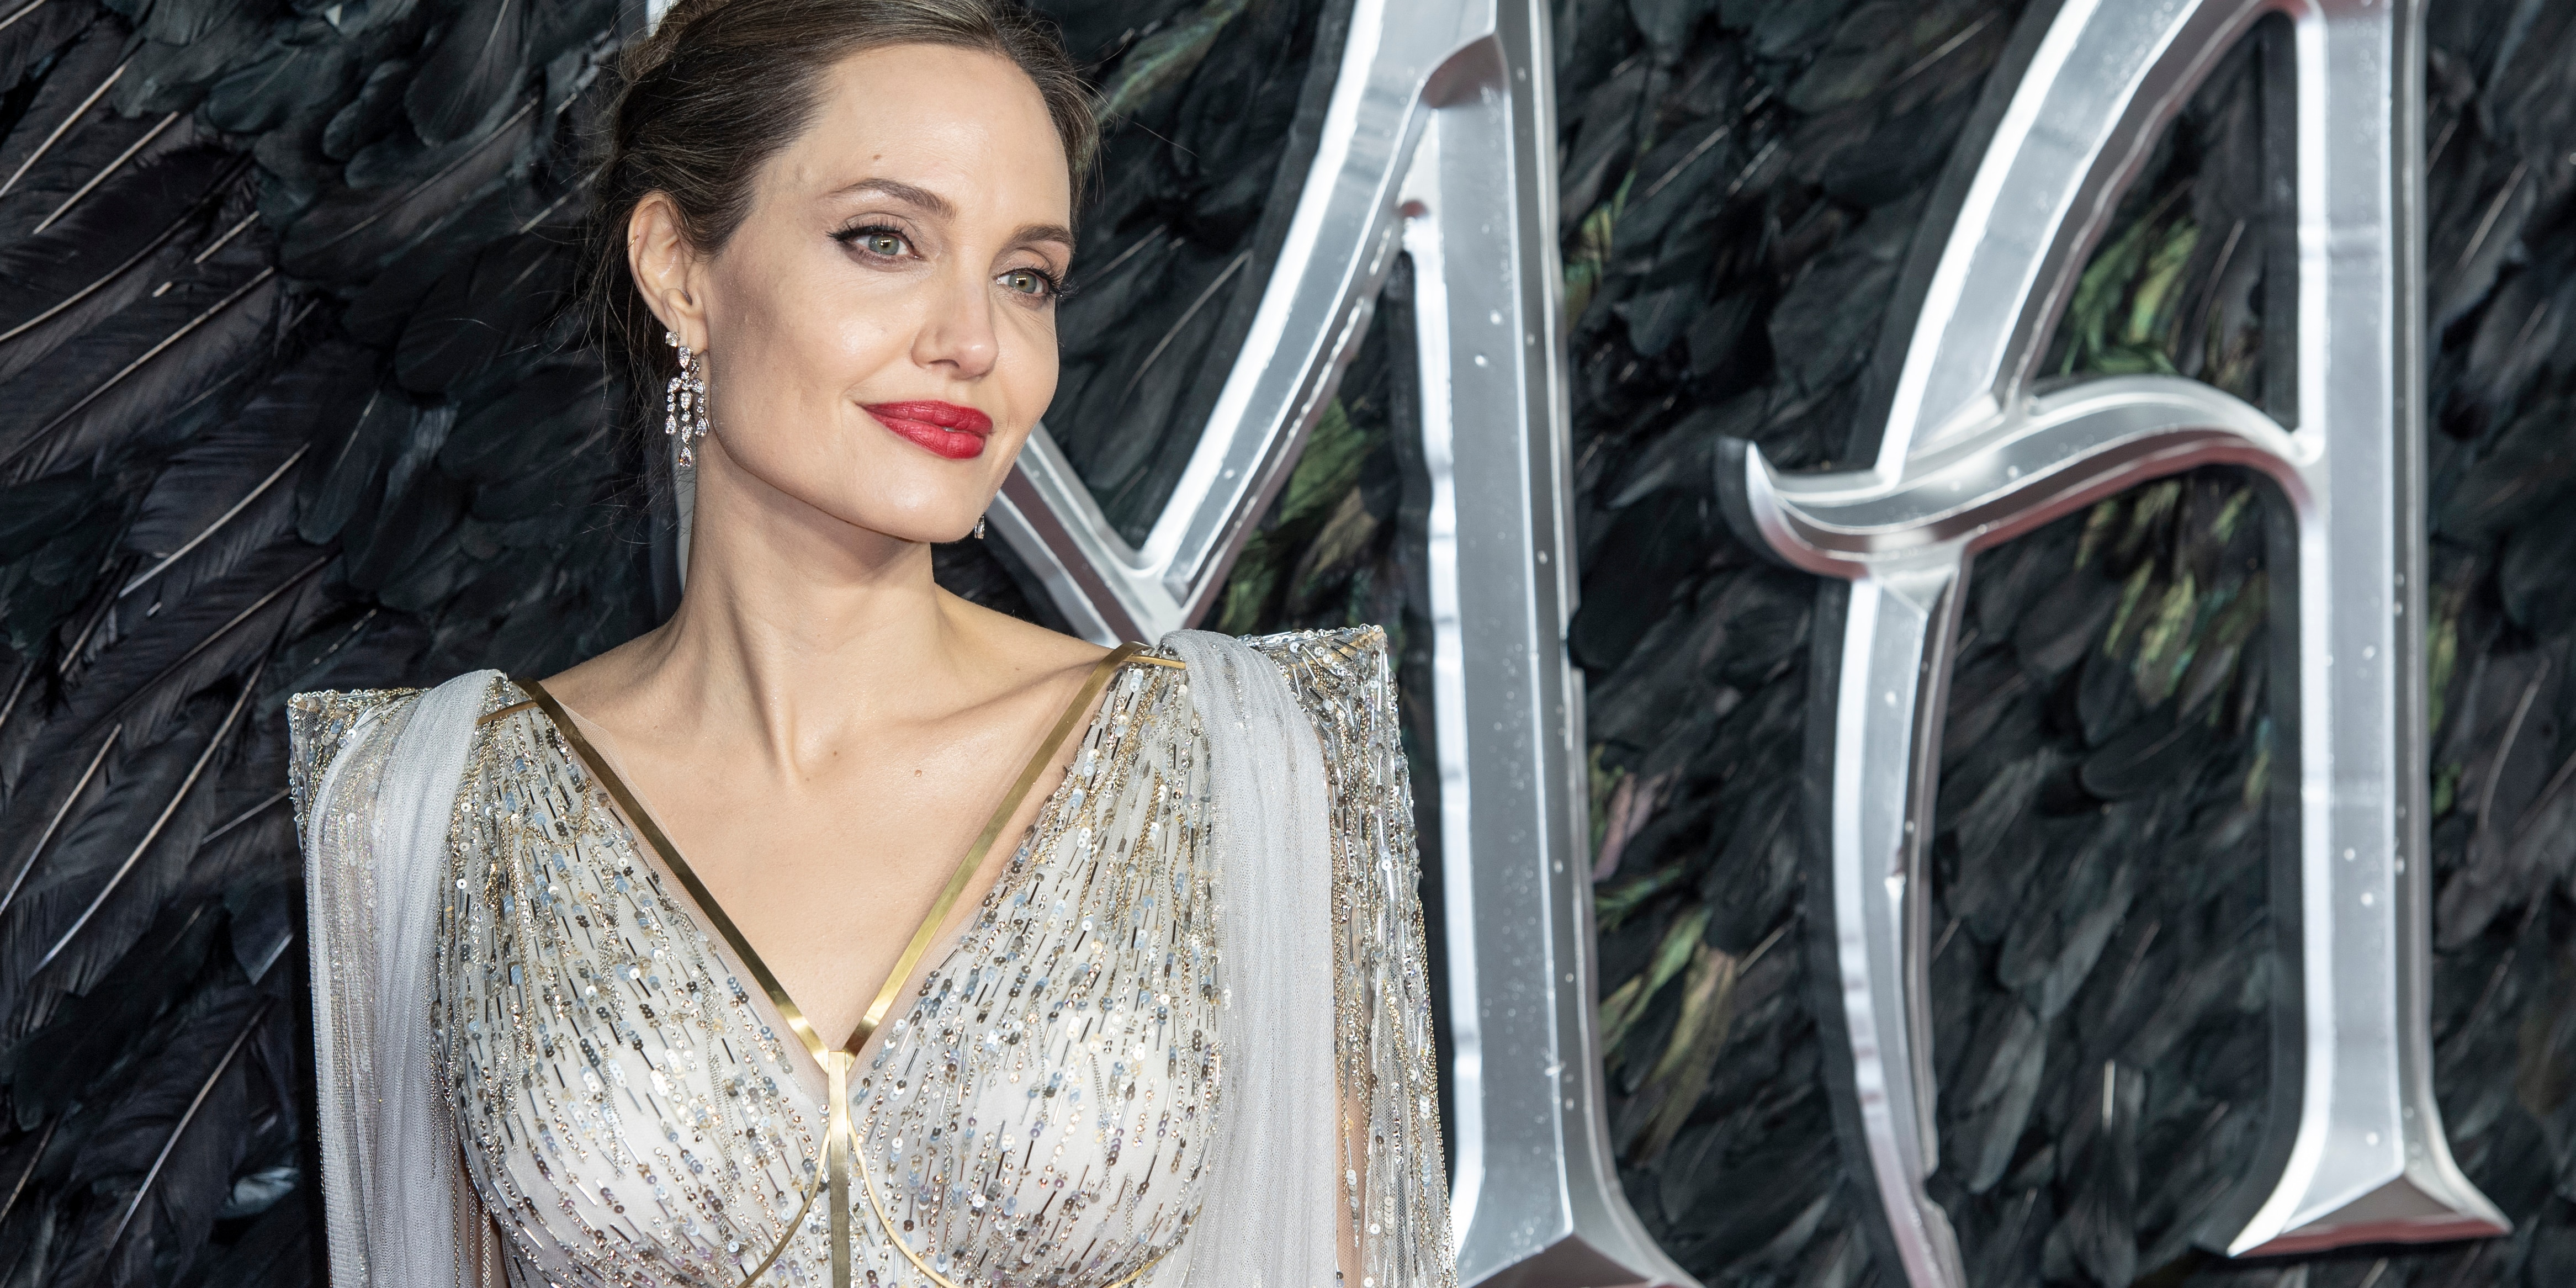 Angelina Jolie's request for the removal of the judge in the case of her divorce from Brad Pitt has reportedly been denied. (Photo by Gary Mitchell/SOPA Images/LightRocket via Getty Images)